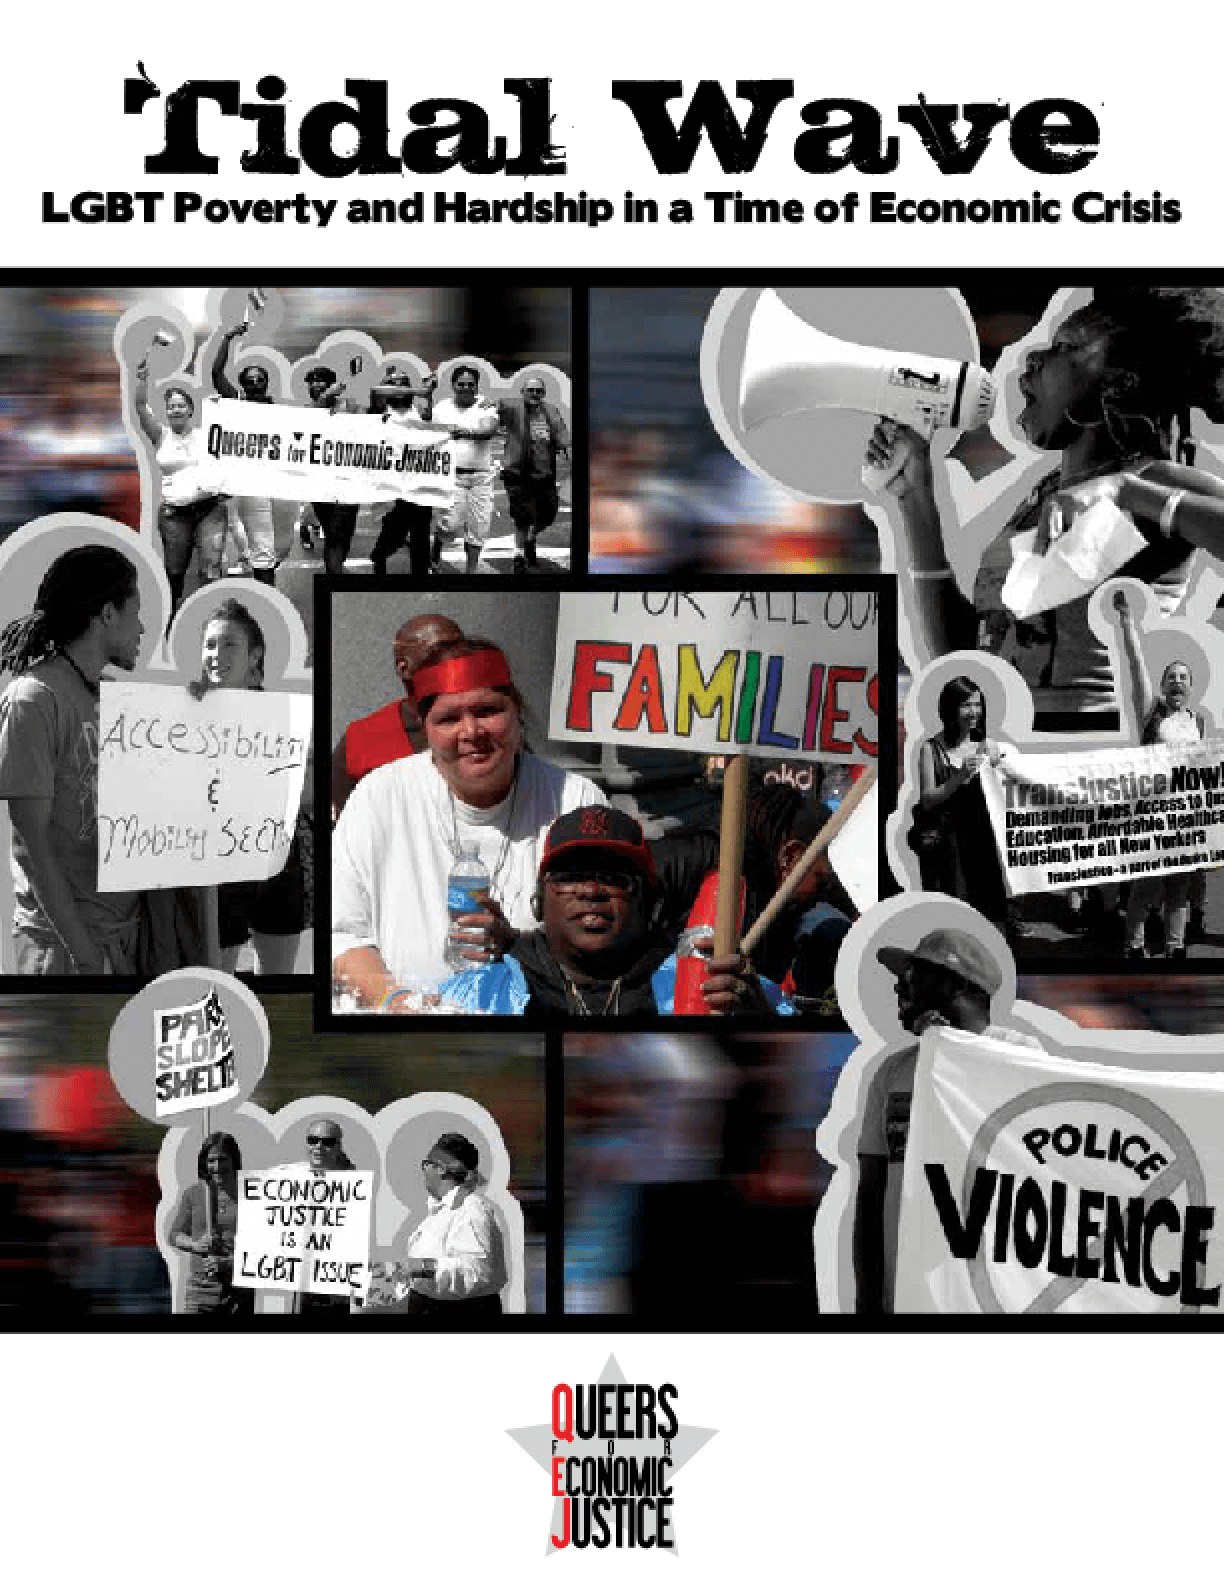 Tidal Wave: LGBT Poverty and Hardship in a Time of Economic Crisis